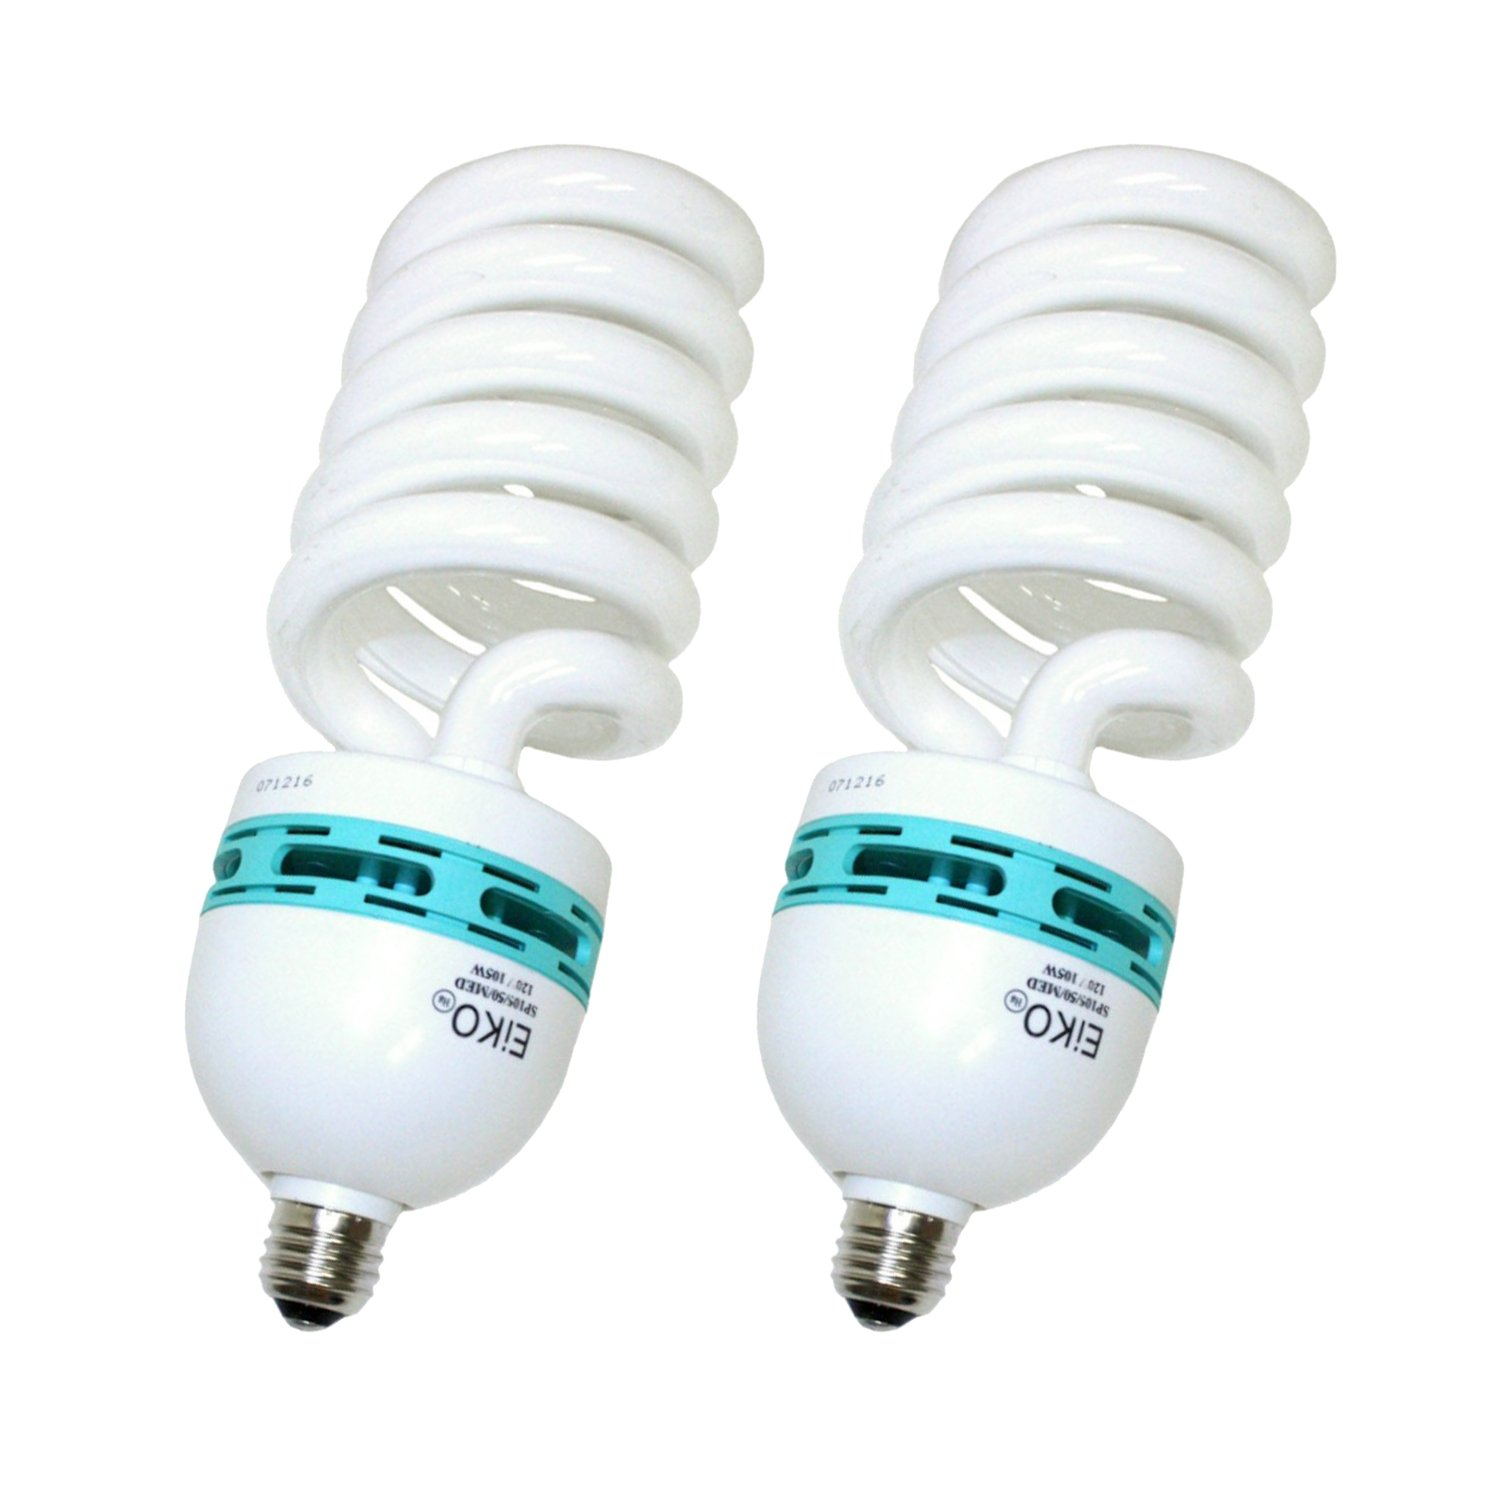 Compact Fluorescent Light Bulbs Led Light Bulbs 100 Compact Florescent Bulbs How To Reduce On